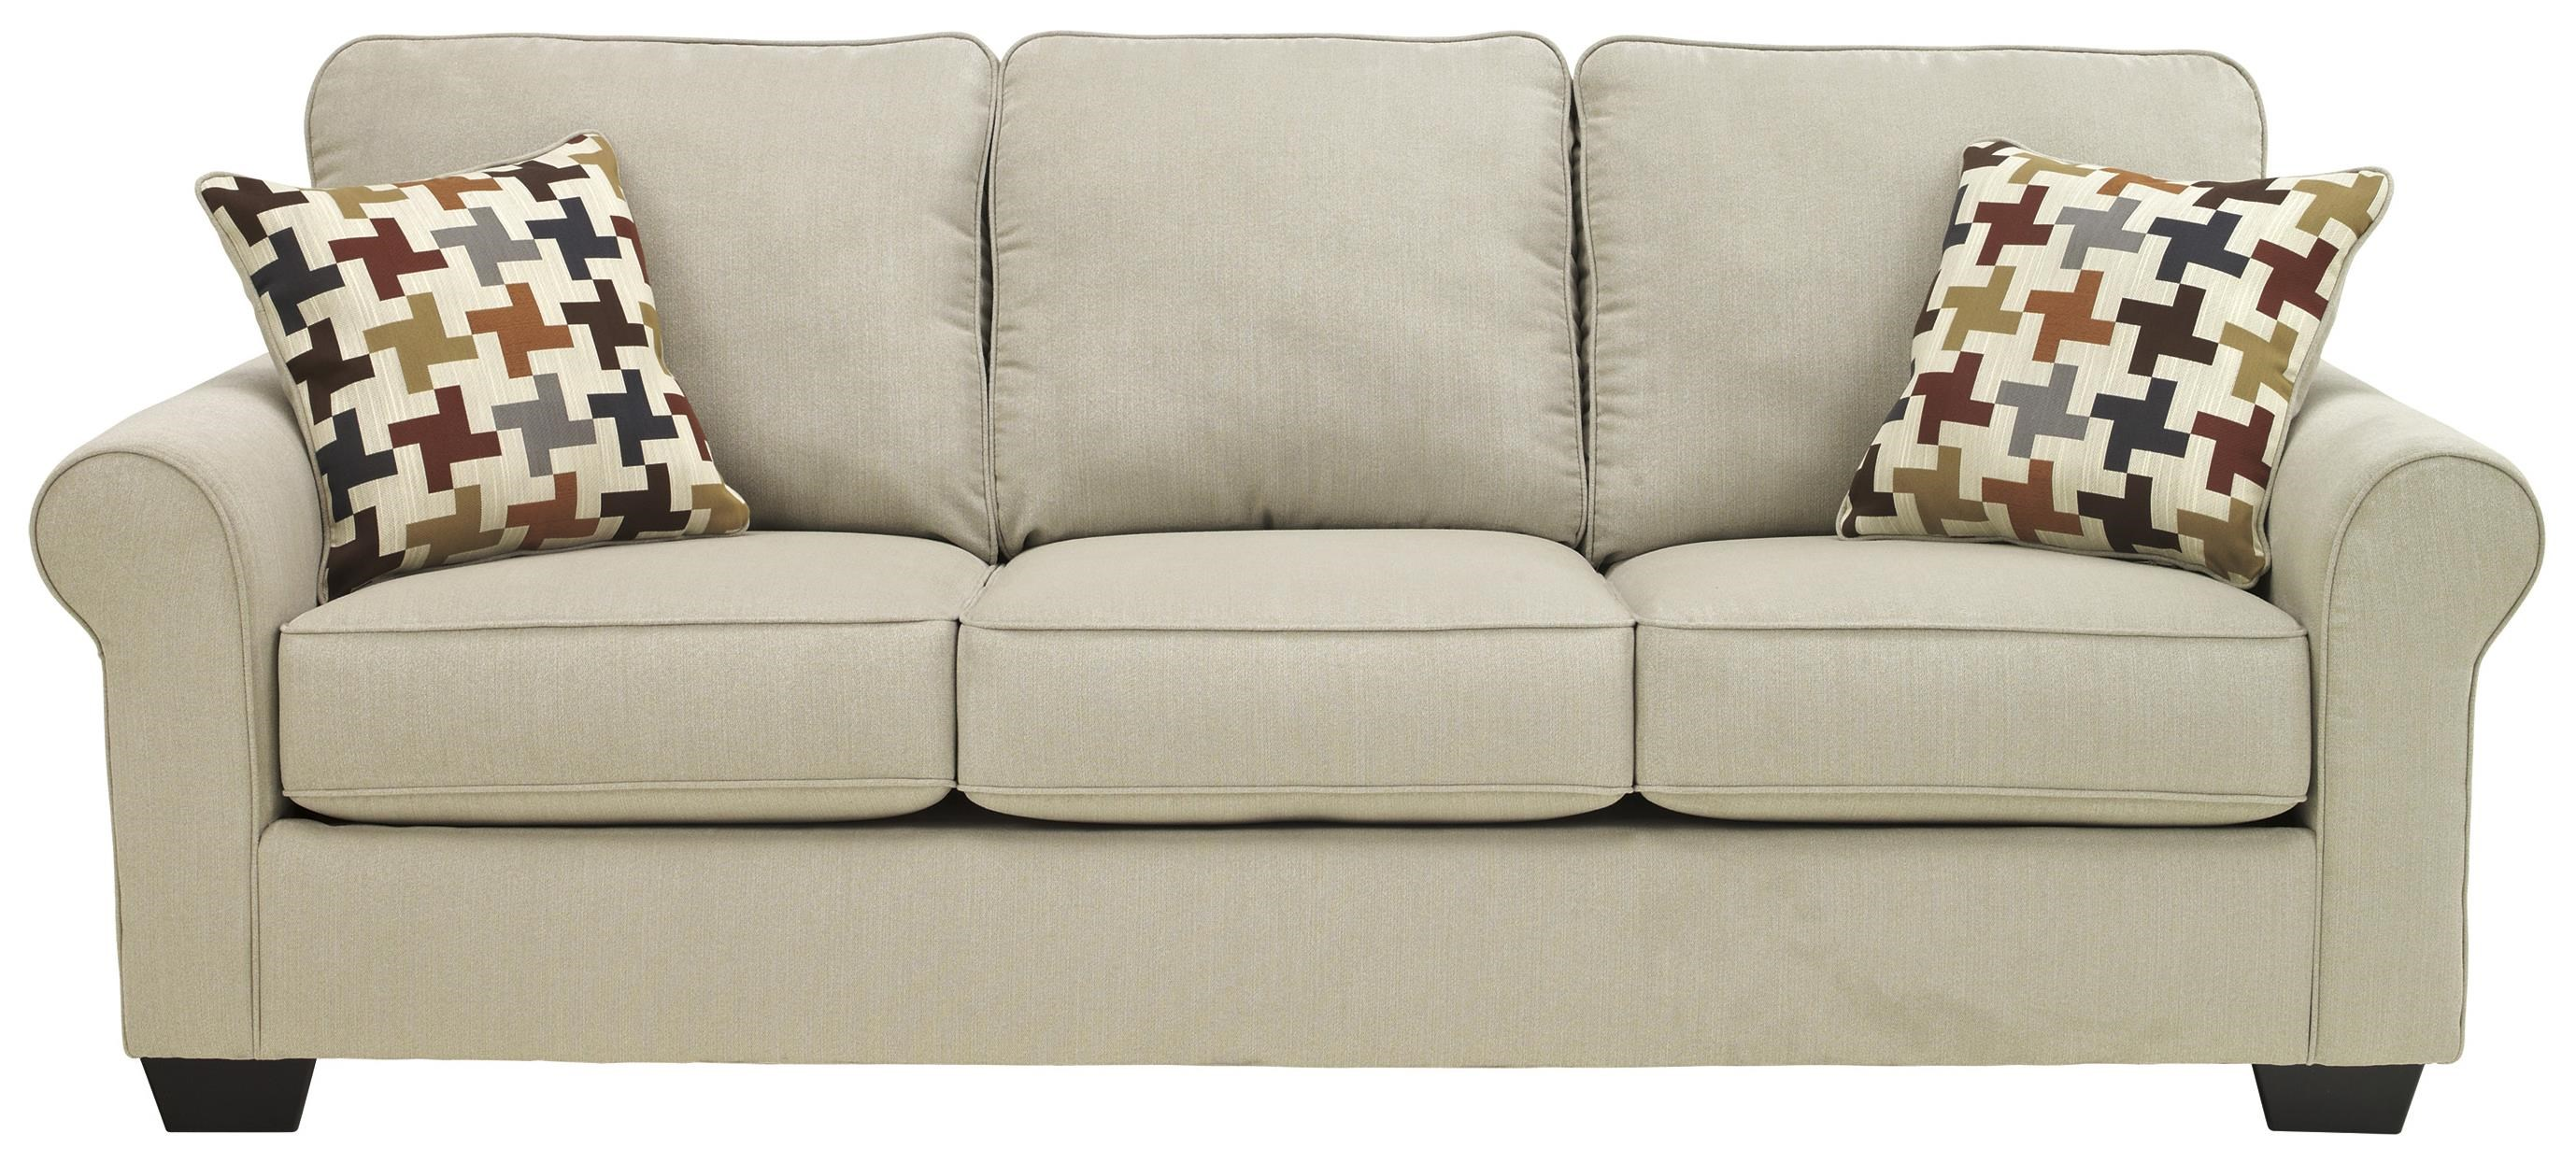 Ashley Furniture Caci Contemporary Sofa With Rolled Arms   Miskelly  Furniture   Sofas